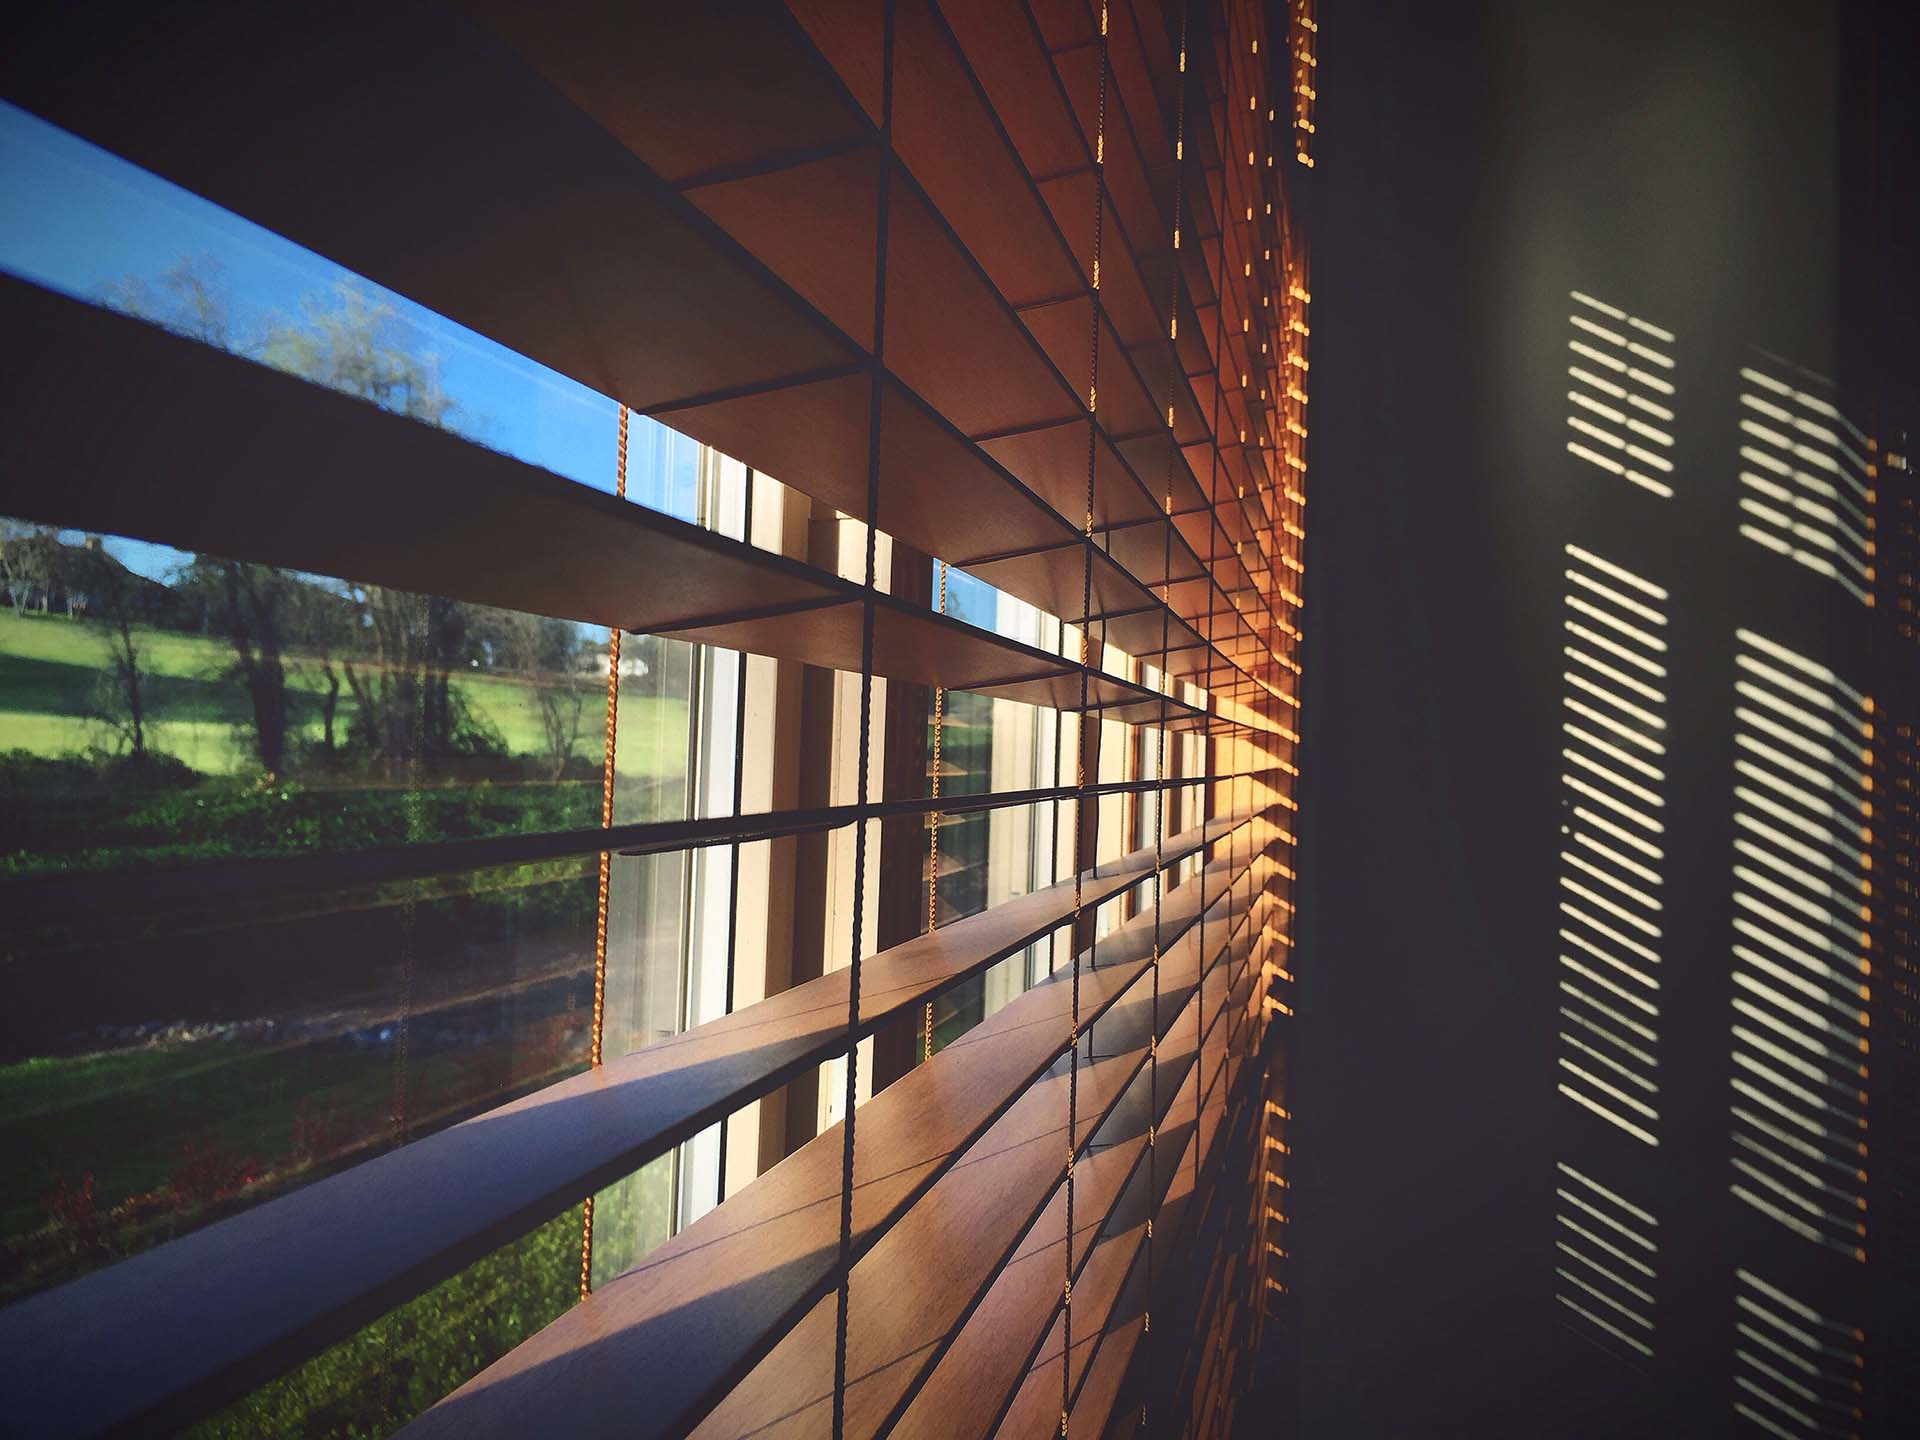 5 Reasons to Get Motorized Window Shades